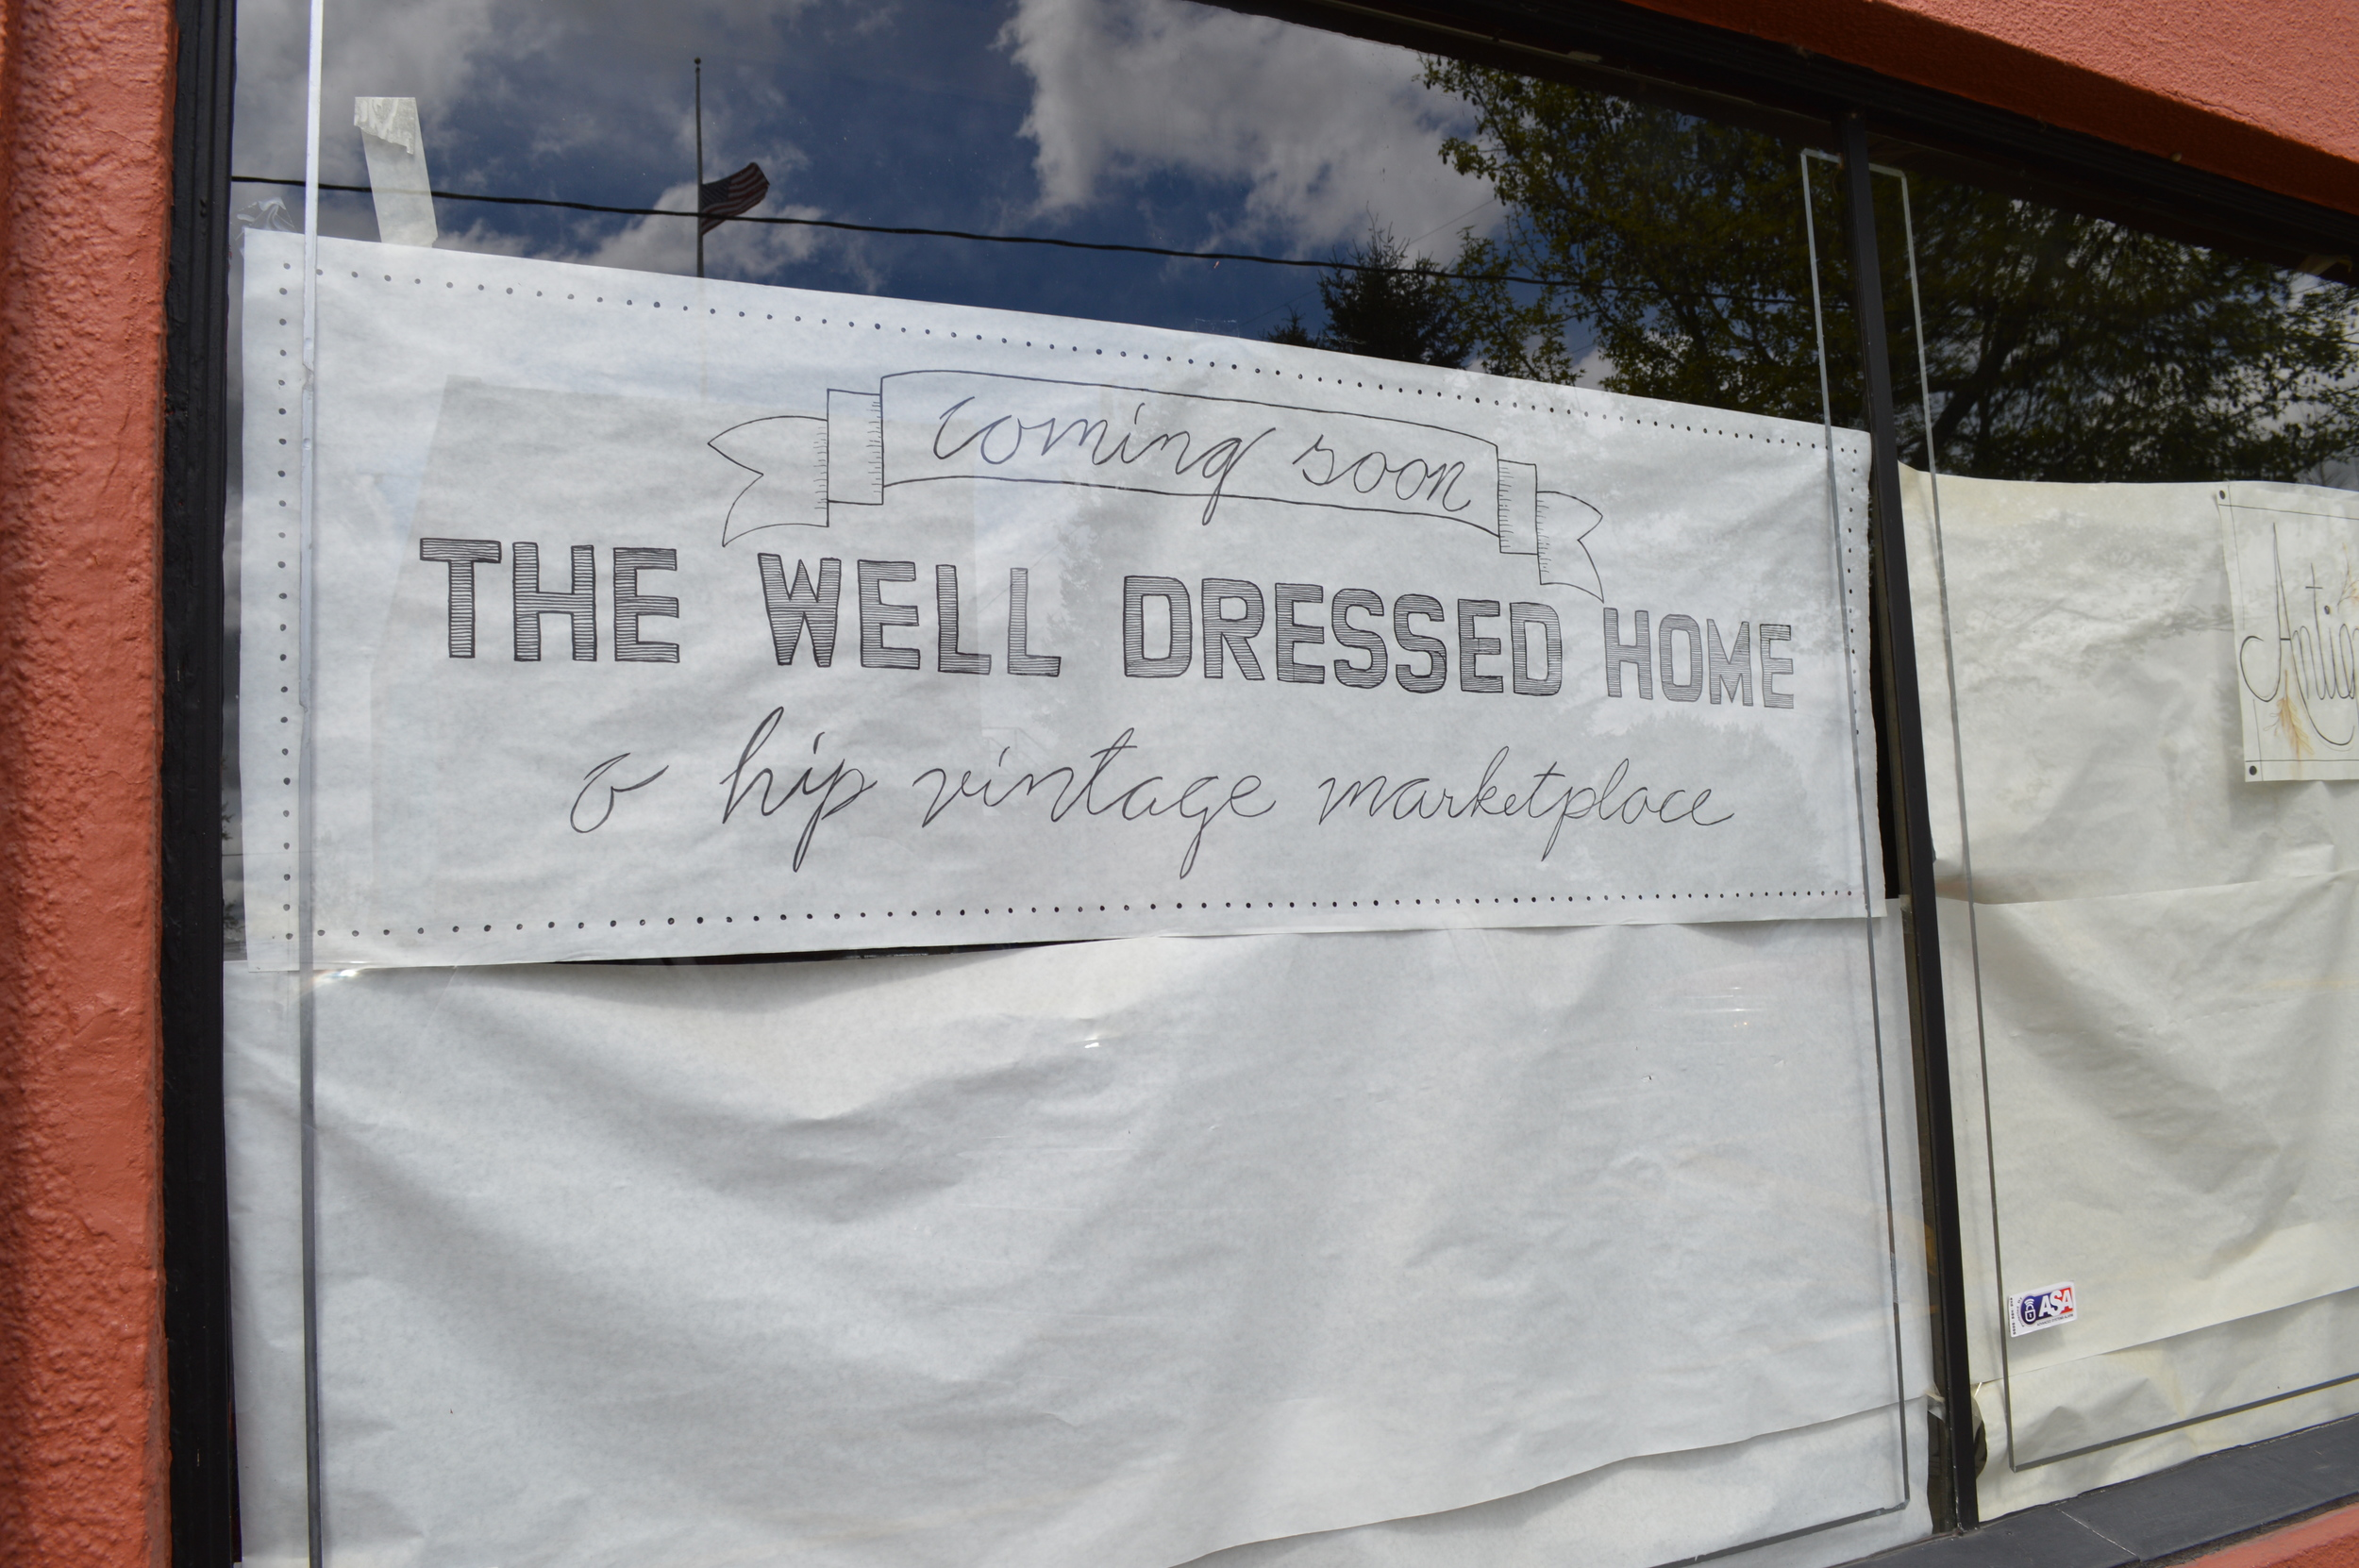 The Well Dressed Home...coming soon!